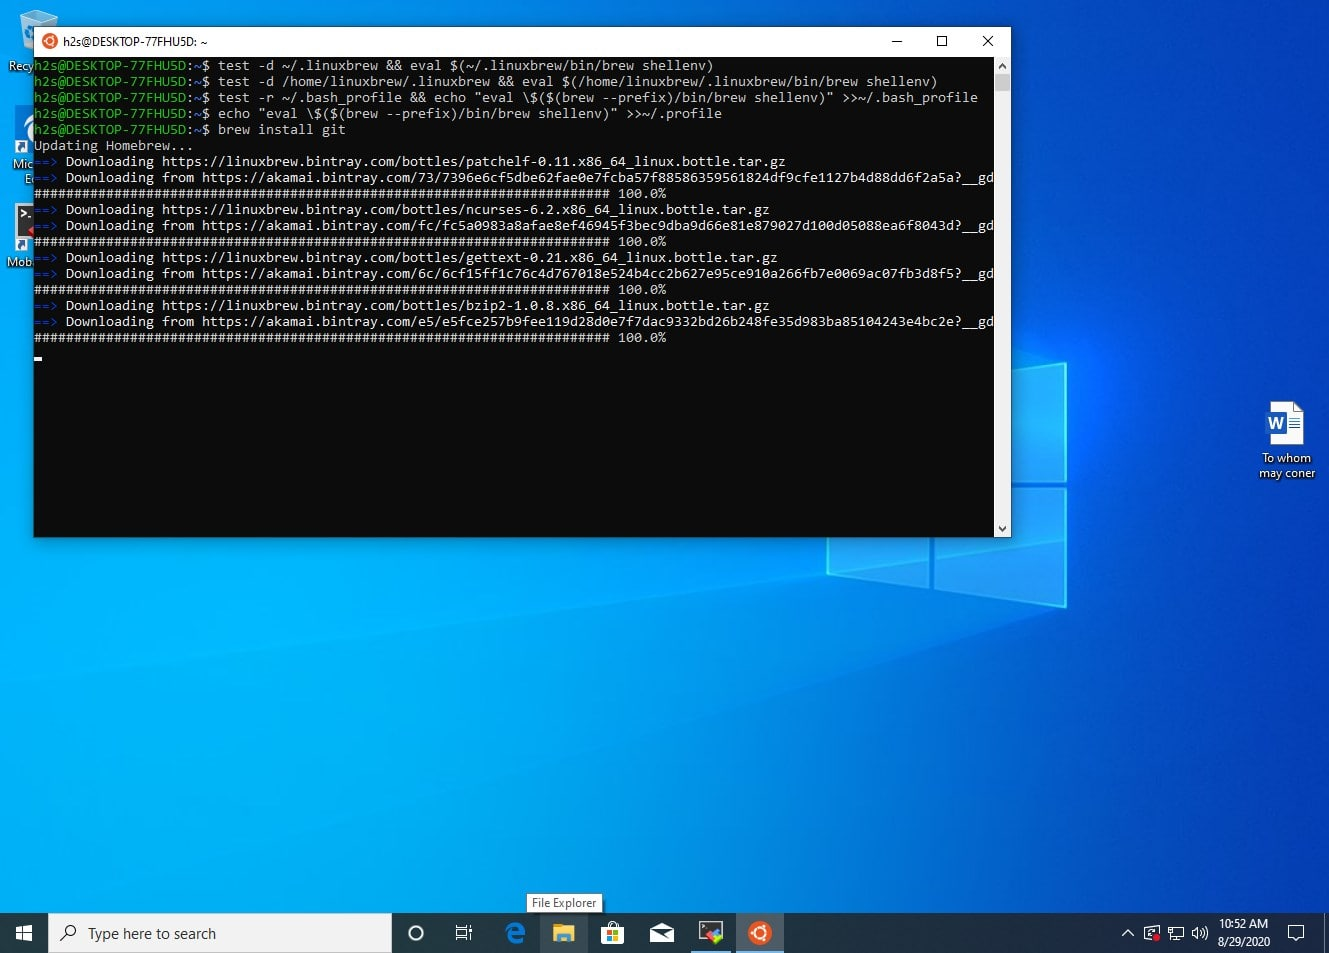 Install Homw Bre w on Windows 10 WSL Windows subsystem for Linux min